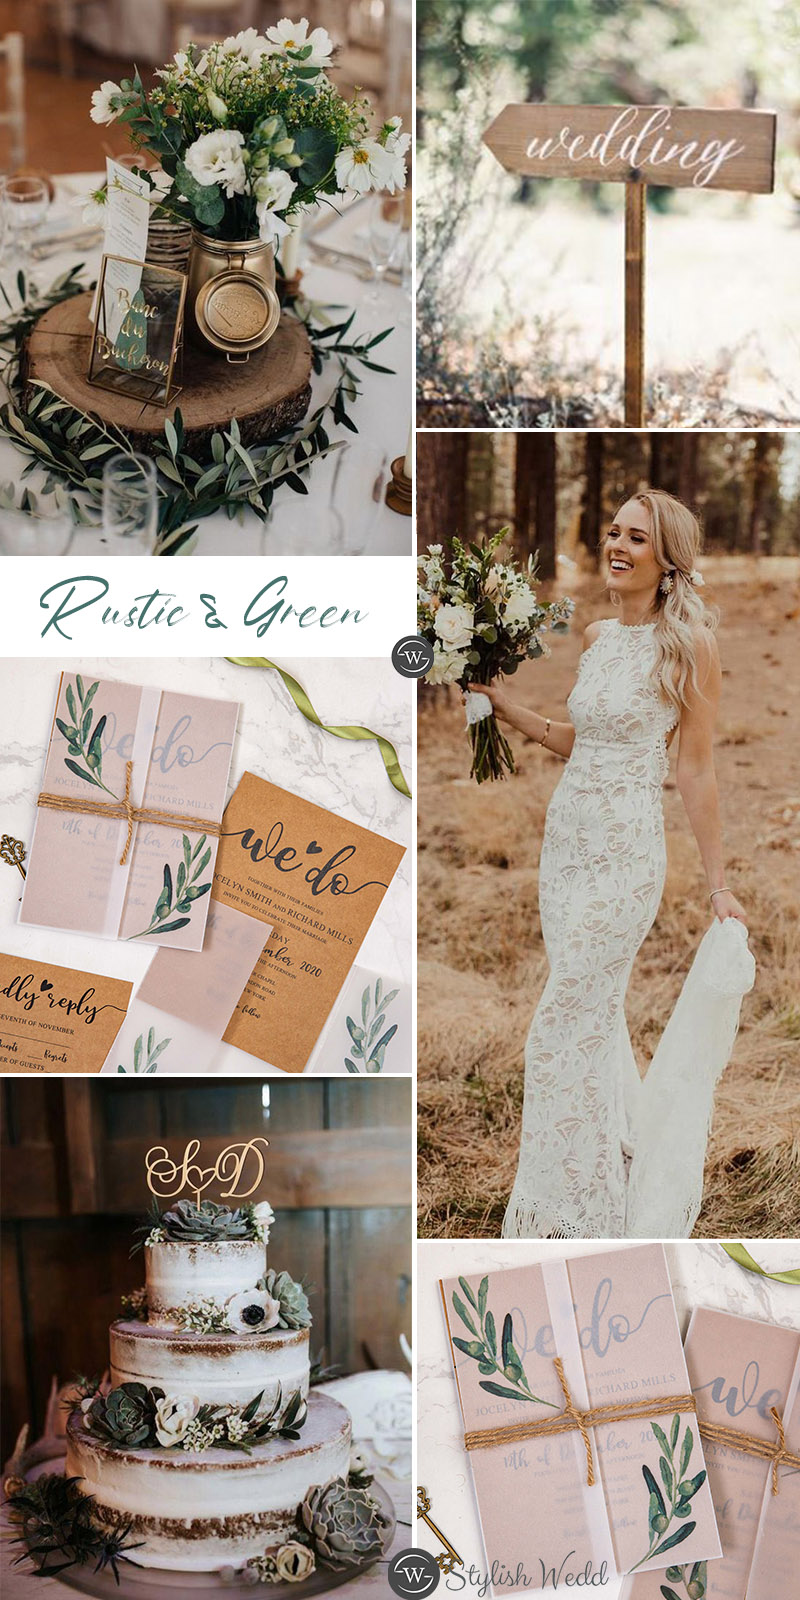 Rustic wedding ideas with greenery olive branch vellum jacket